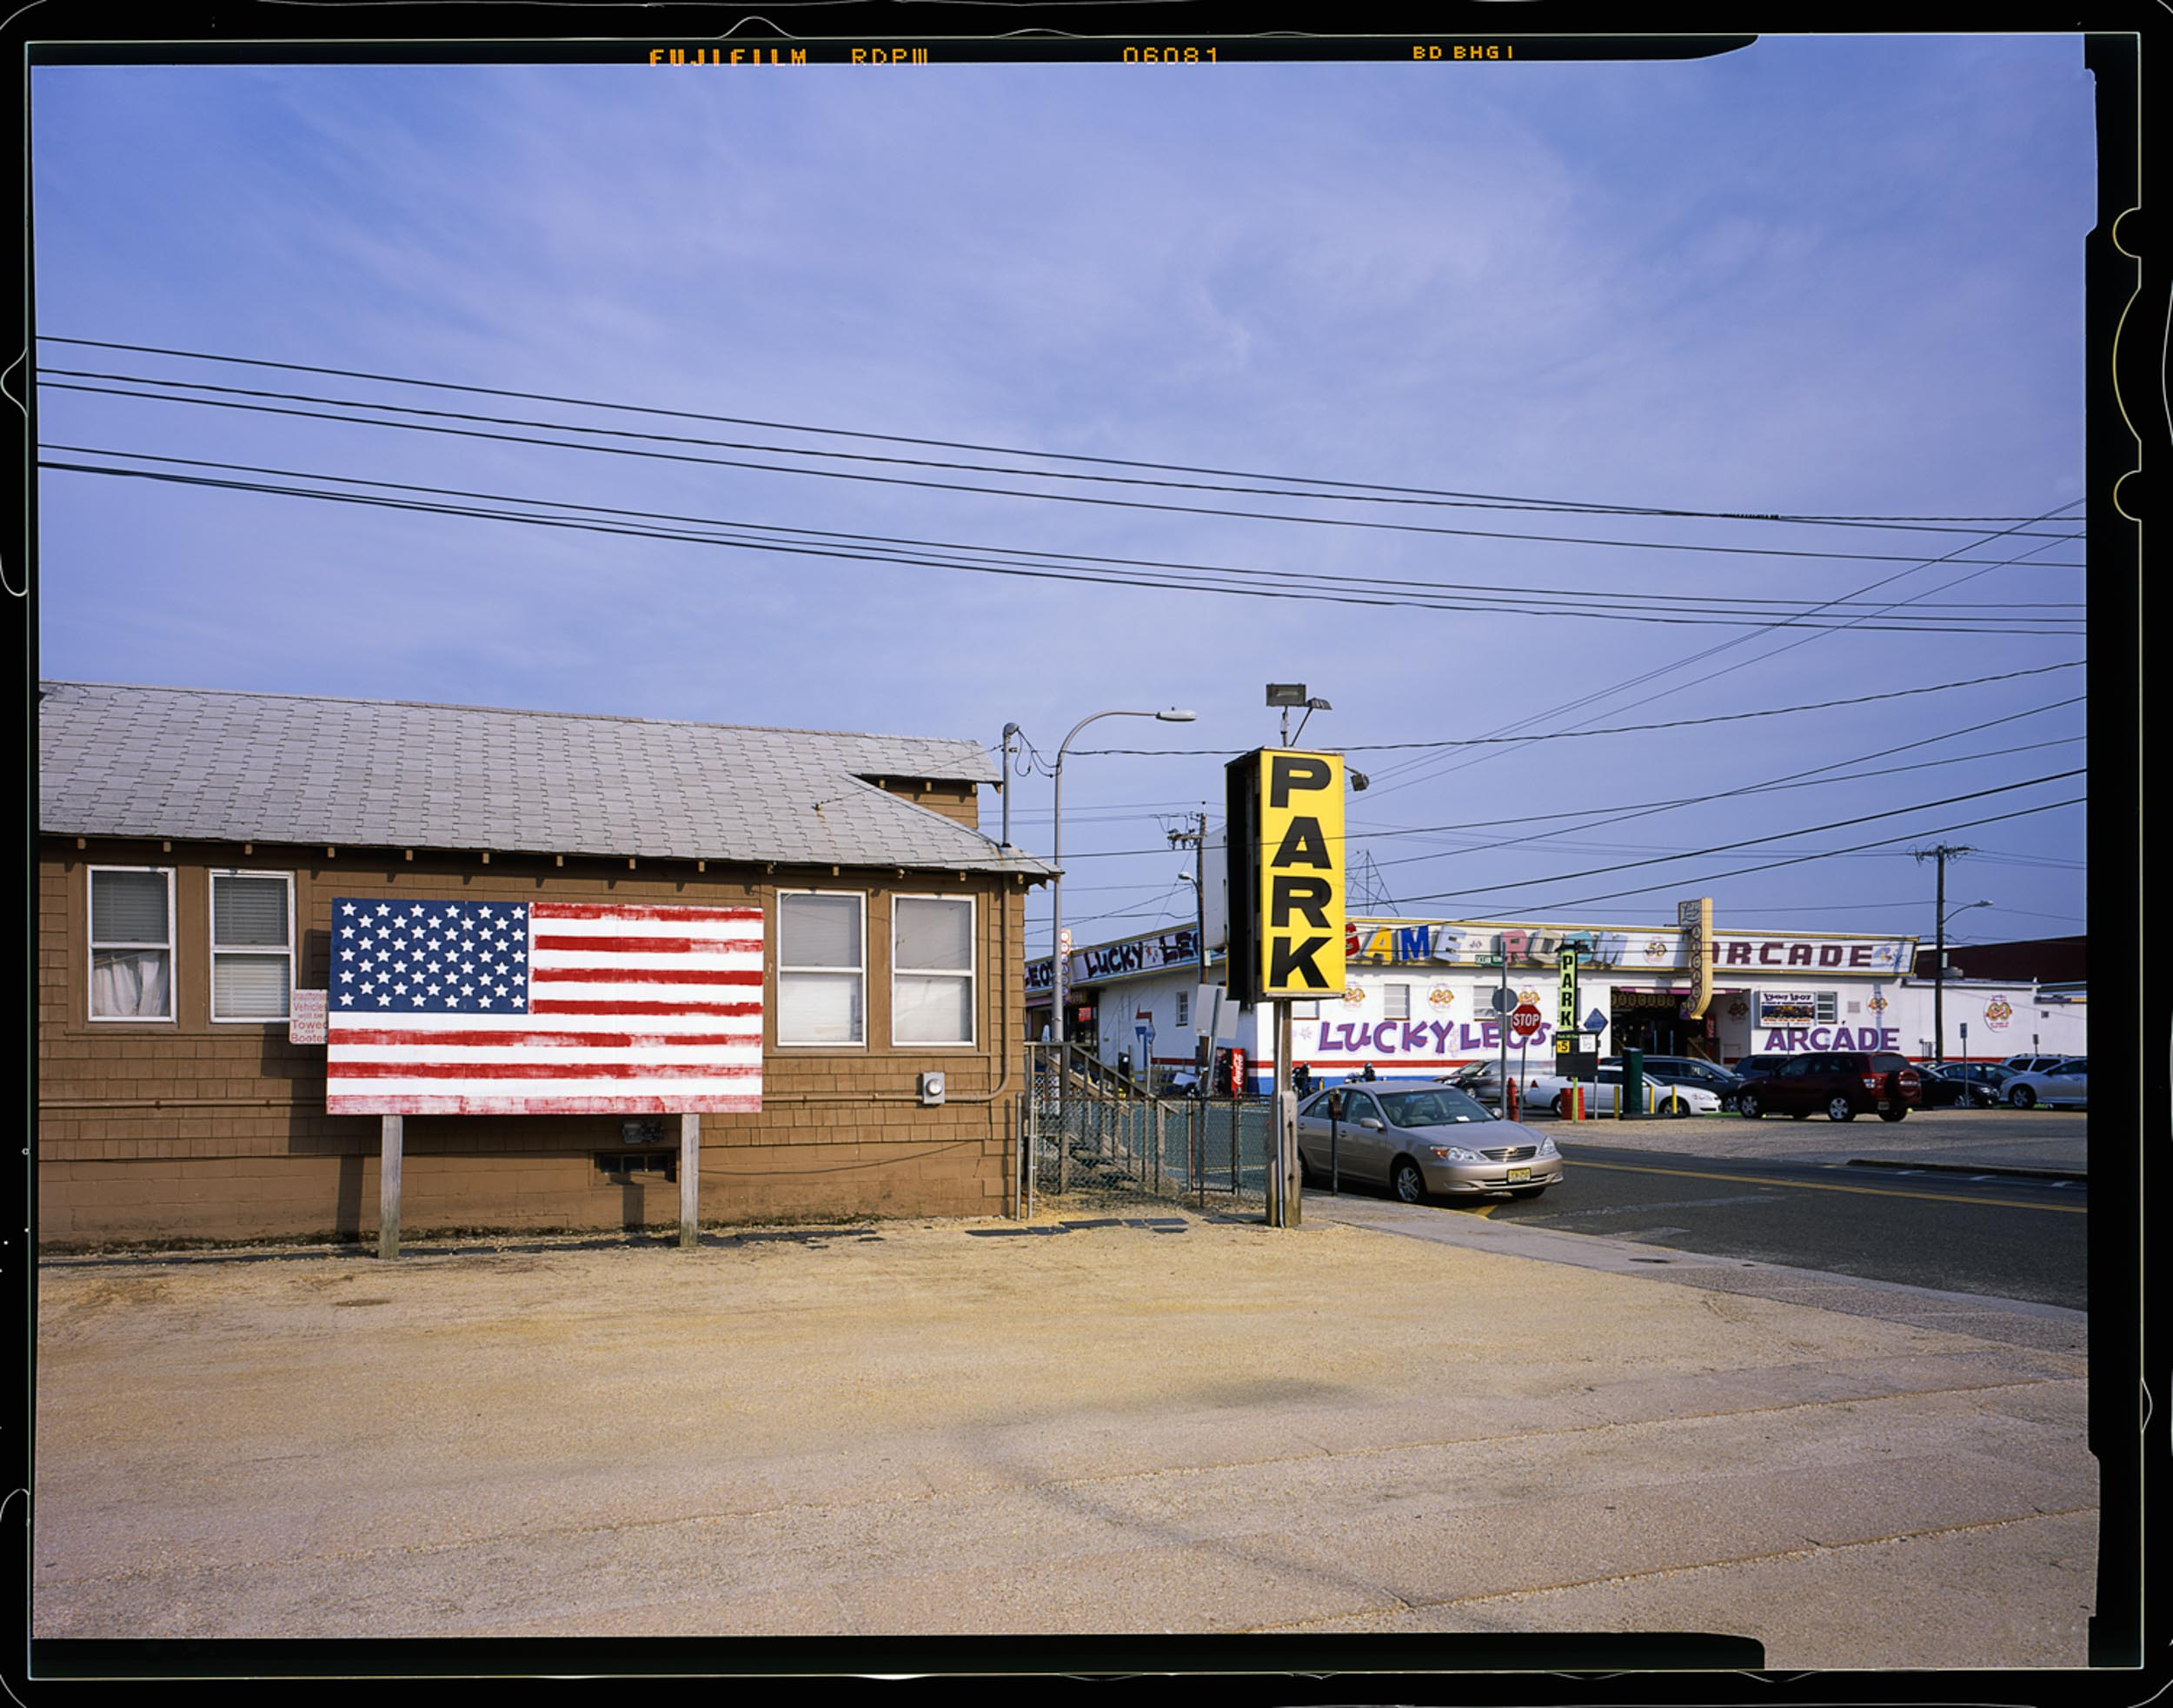 Park, Seaside, NJ 2014 4x5 Shen Hao.    Parked here one day and saw this cool view of the back of the boardwalk with this giant American flag.